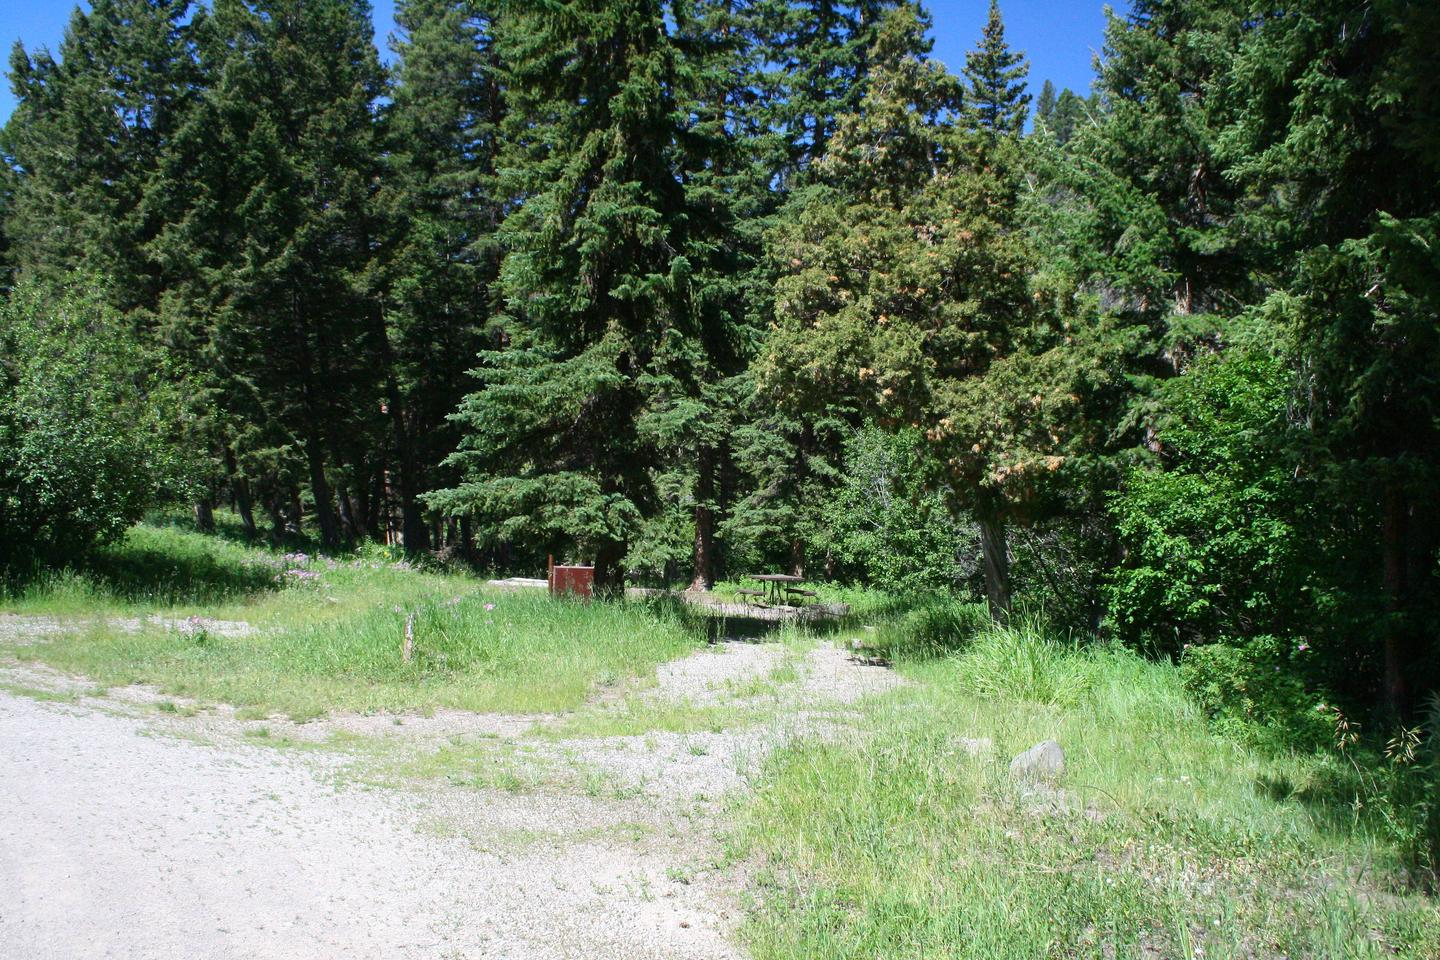 Slough Creek Campground Site #11....Slough Creek Campground Site #11